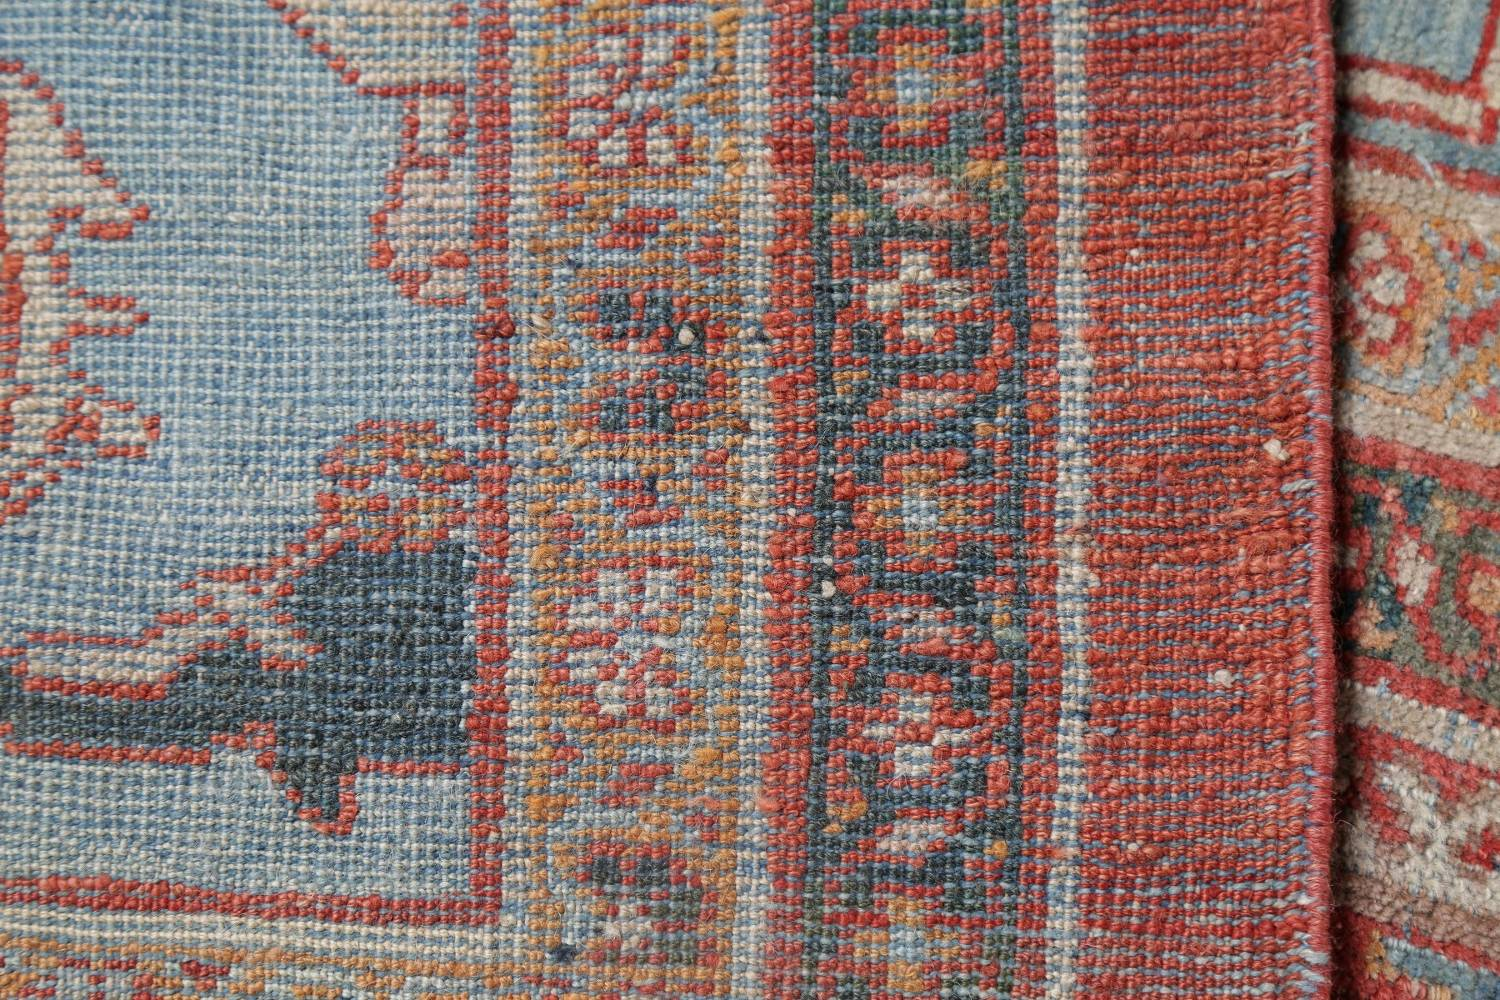 Palace Size Pre-1900 Antique Sultanabad Persian Rug 14x24 image 24